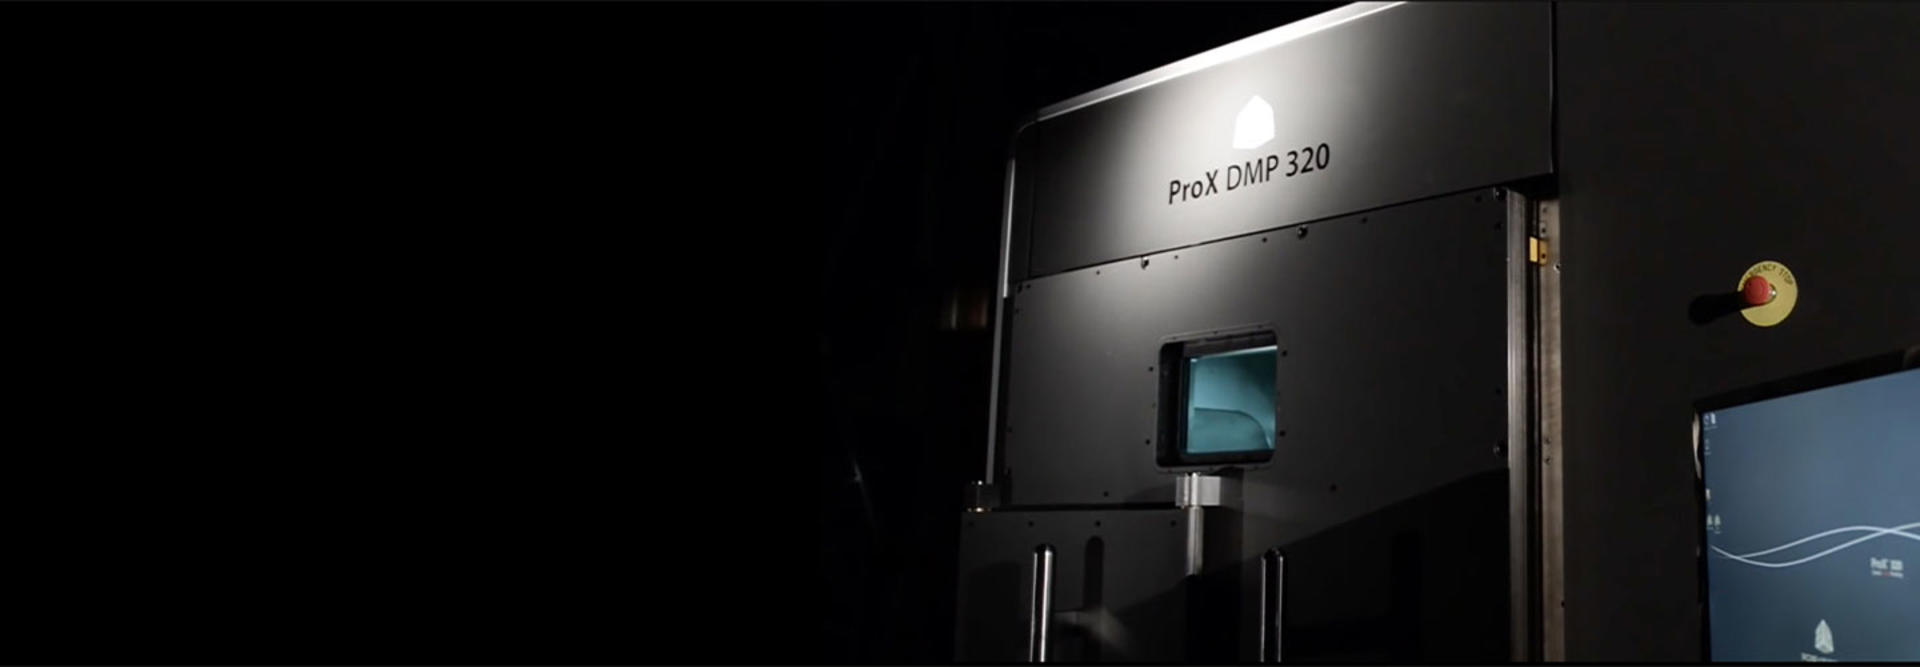 ProX DMP 320, metal 3d printer from 3D Systems